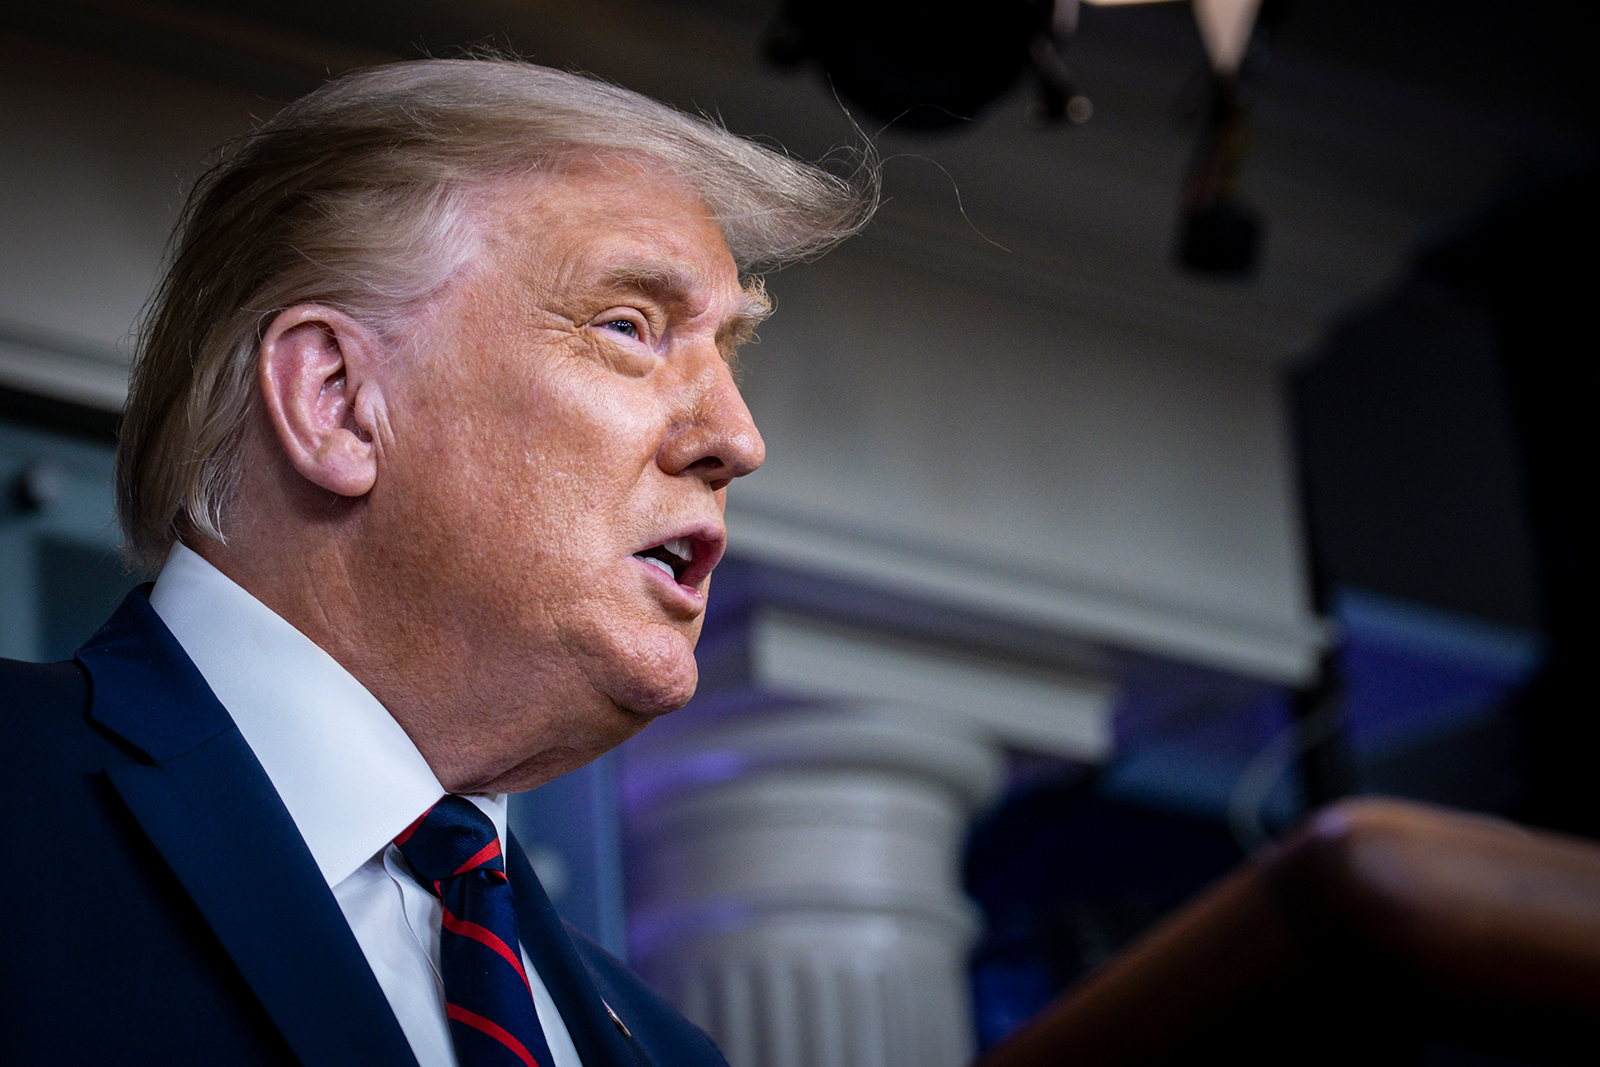 US President Donald Trump announces that the Food and Drug Administration is issuing an emergency authorization for blood plasma as a coronavirus treatment during a news conference at the White House in Washington, DC on August 23.